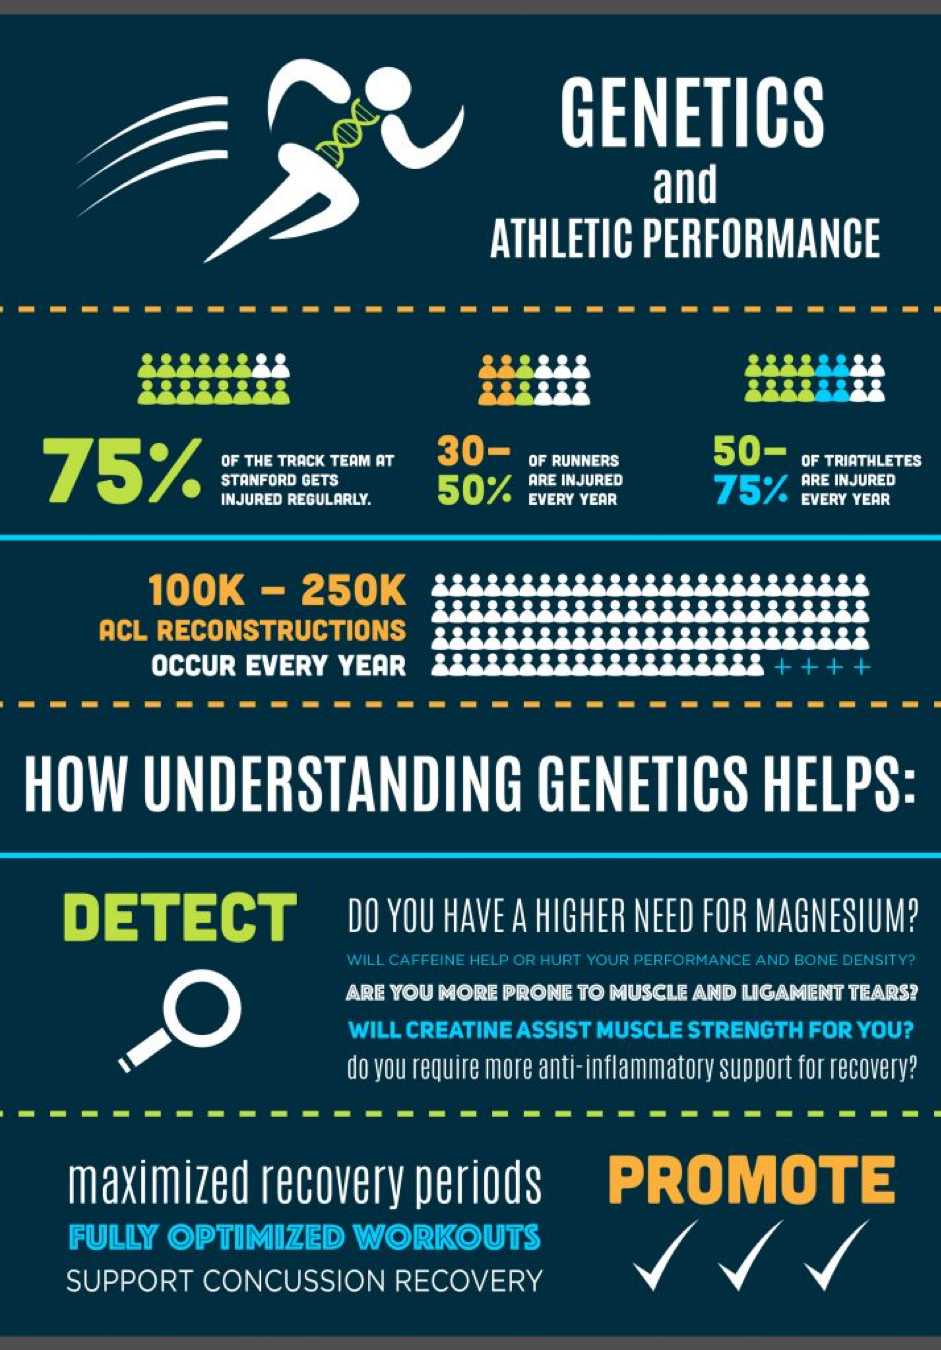 genetics and athletics.png